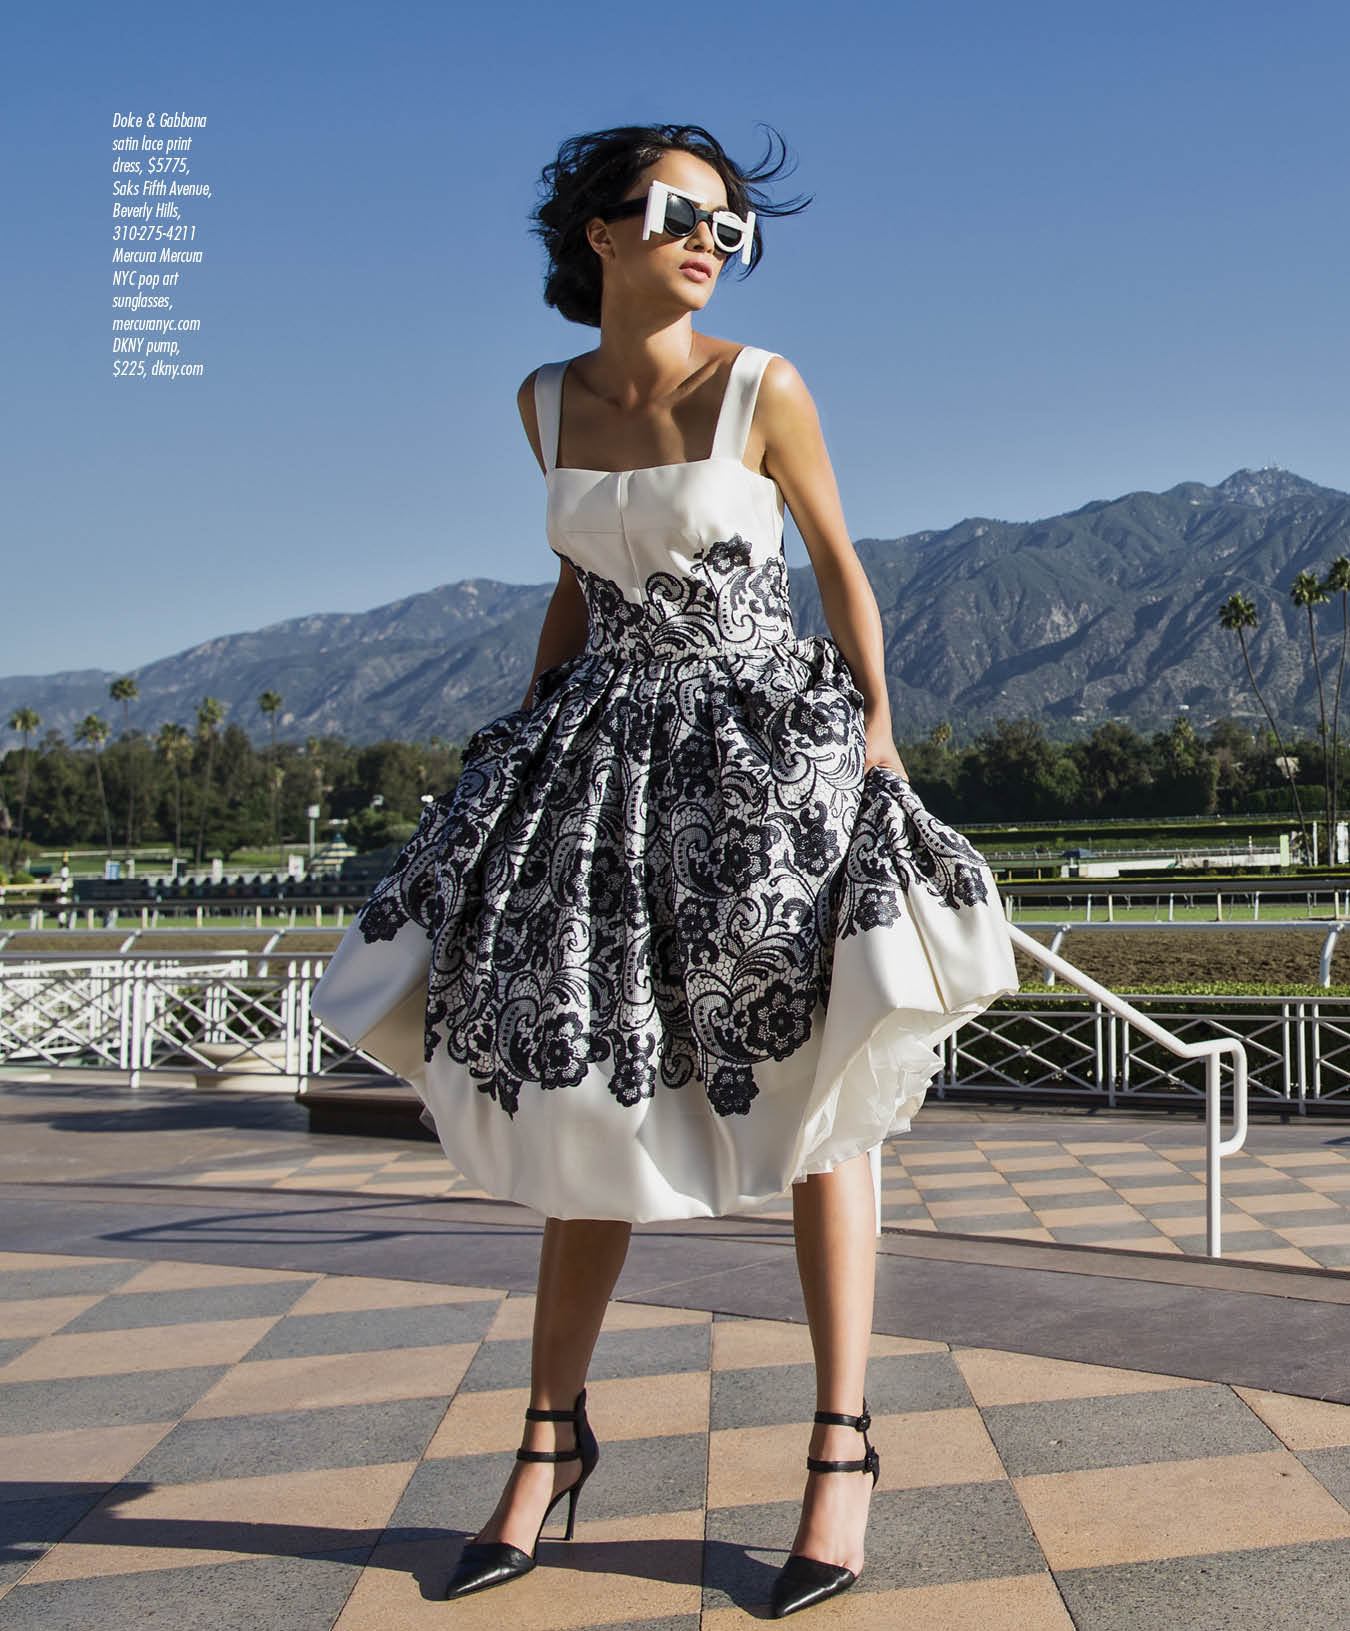 Okay, so the shot I decide to show you doesn't have a horse in it. Well, not true. This is the left side of a spread. The horses are on the right hand page. Angela Jonsson / VIsion Models in Dolce & Gabbana satin lace print   dress, $5775,   Saks Fifth Avenue,   Beverly Hills,   310-275-4211;   Mercura Mercura   NYC pop art   sunglasses,   mercuranyc.com   DKNY pump,   $225, dkny.com